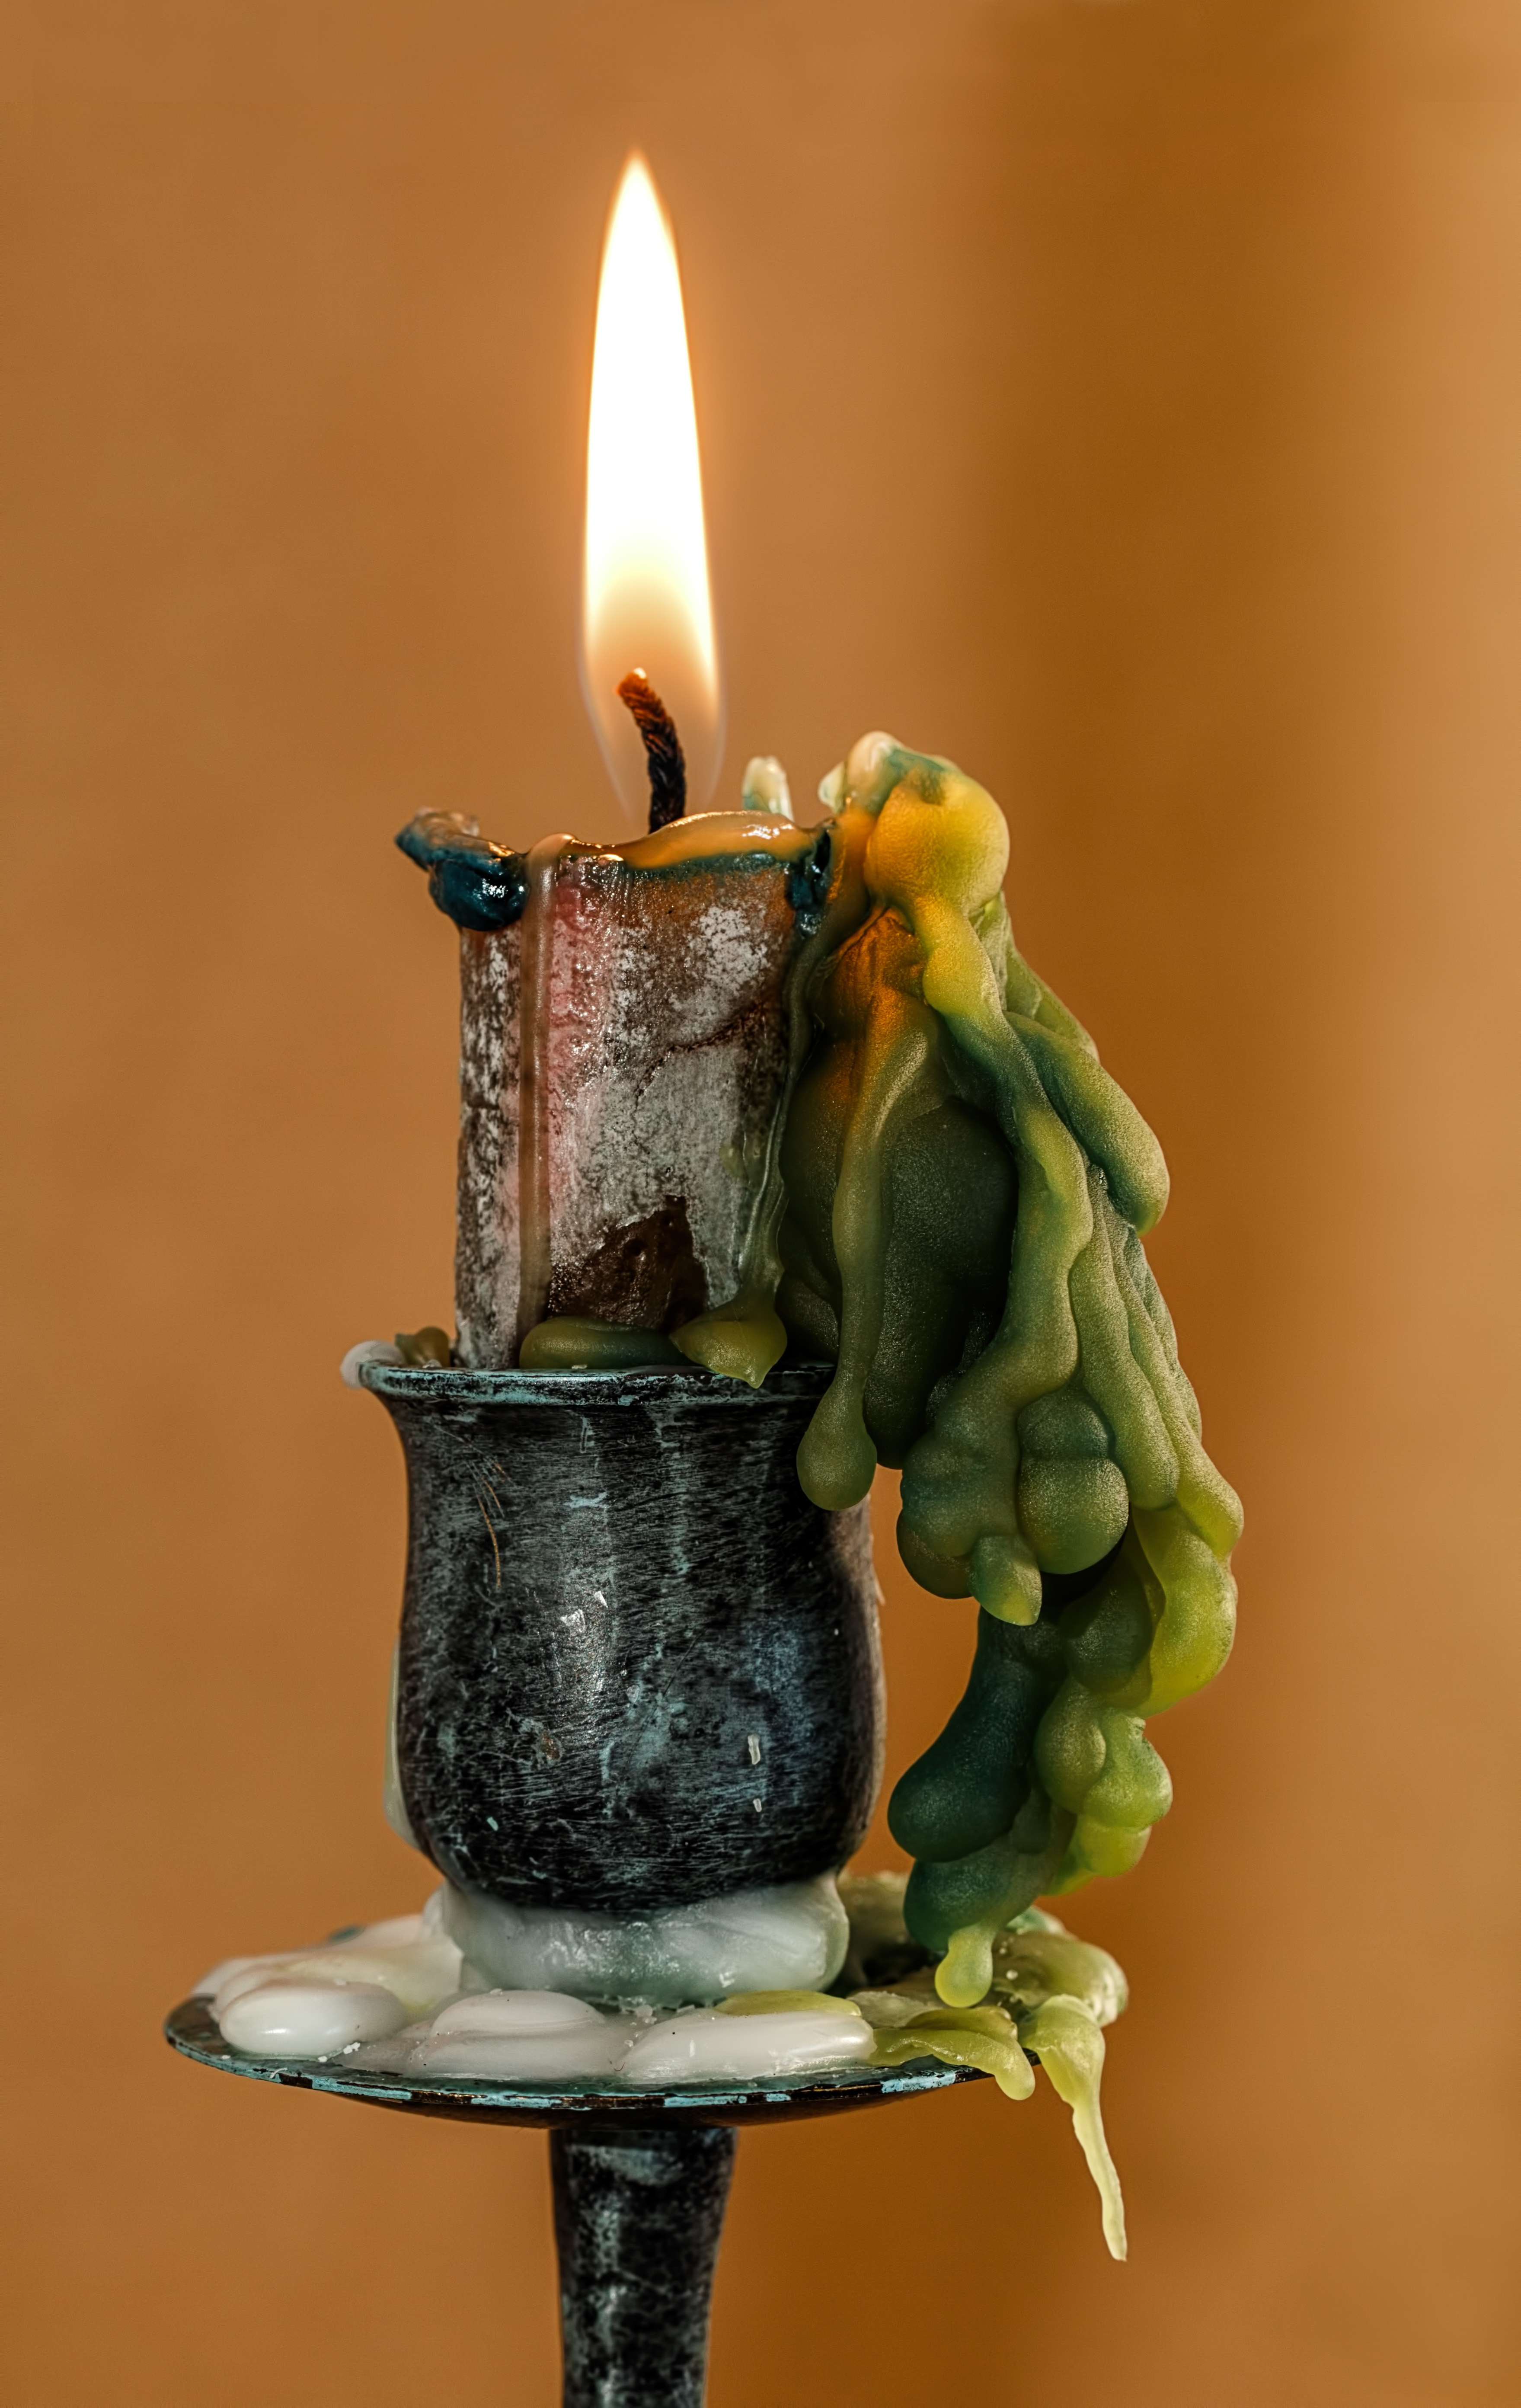 Free Stock Photo Of Burning Candle Candle Wax